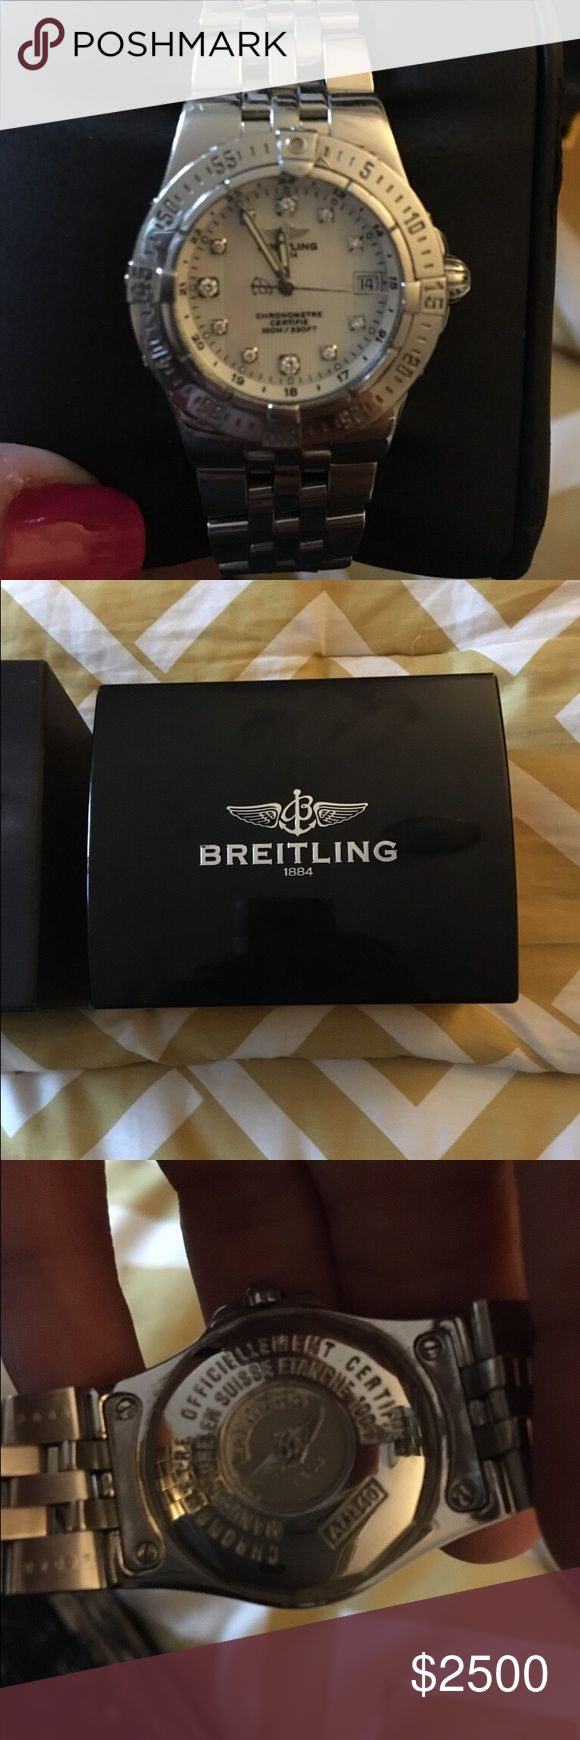 Breitling ladies watch Pink Mother of pear face with diamonds on the hours. Breitling Accessories Watches